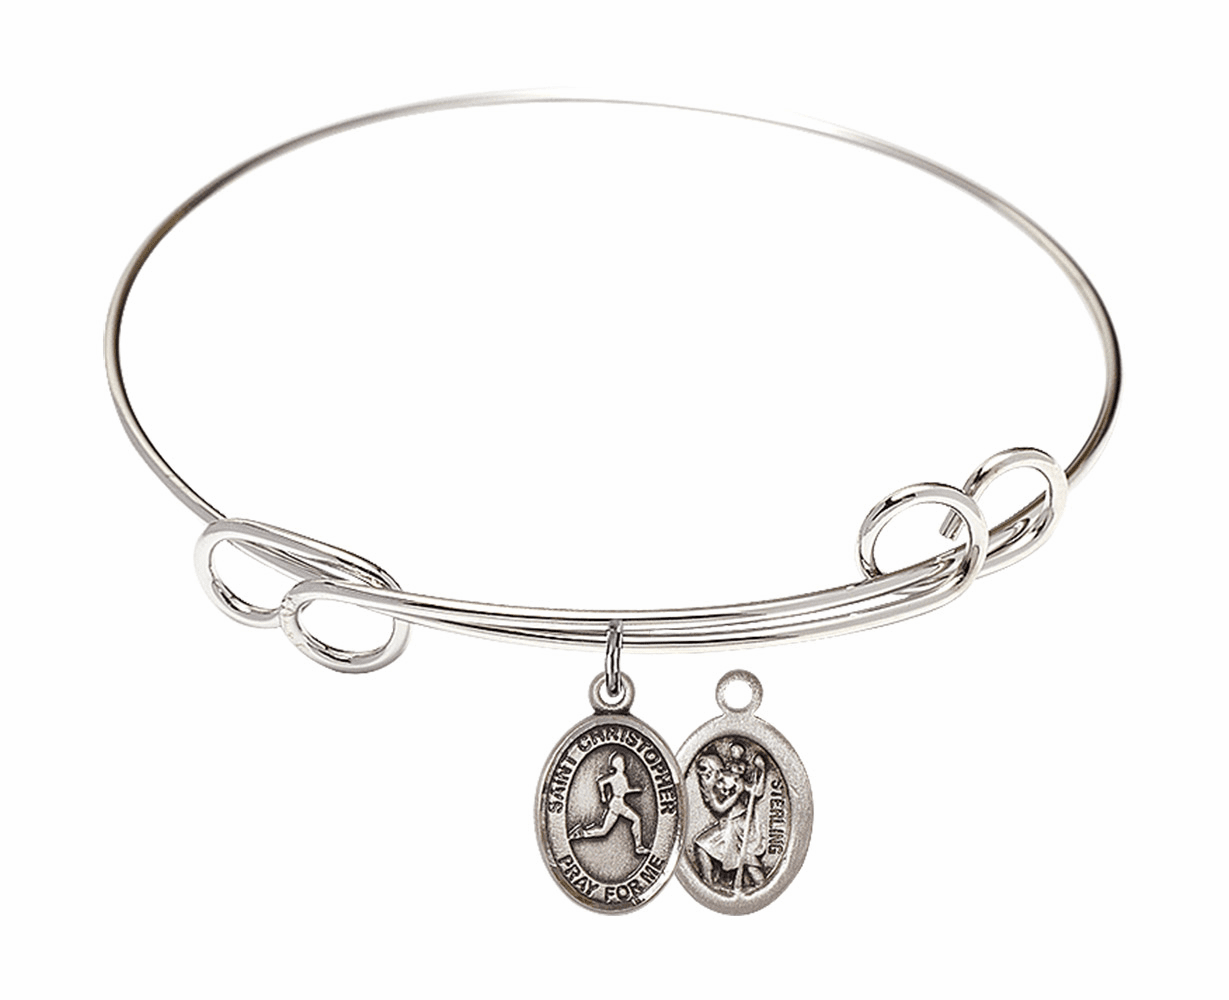 Round Loop St Christopher Track and Field Bangle Charm Bracelet by Bliss